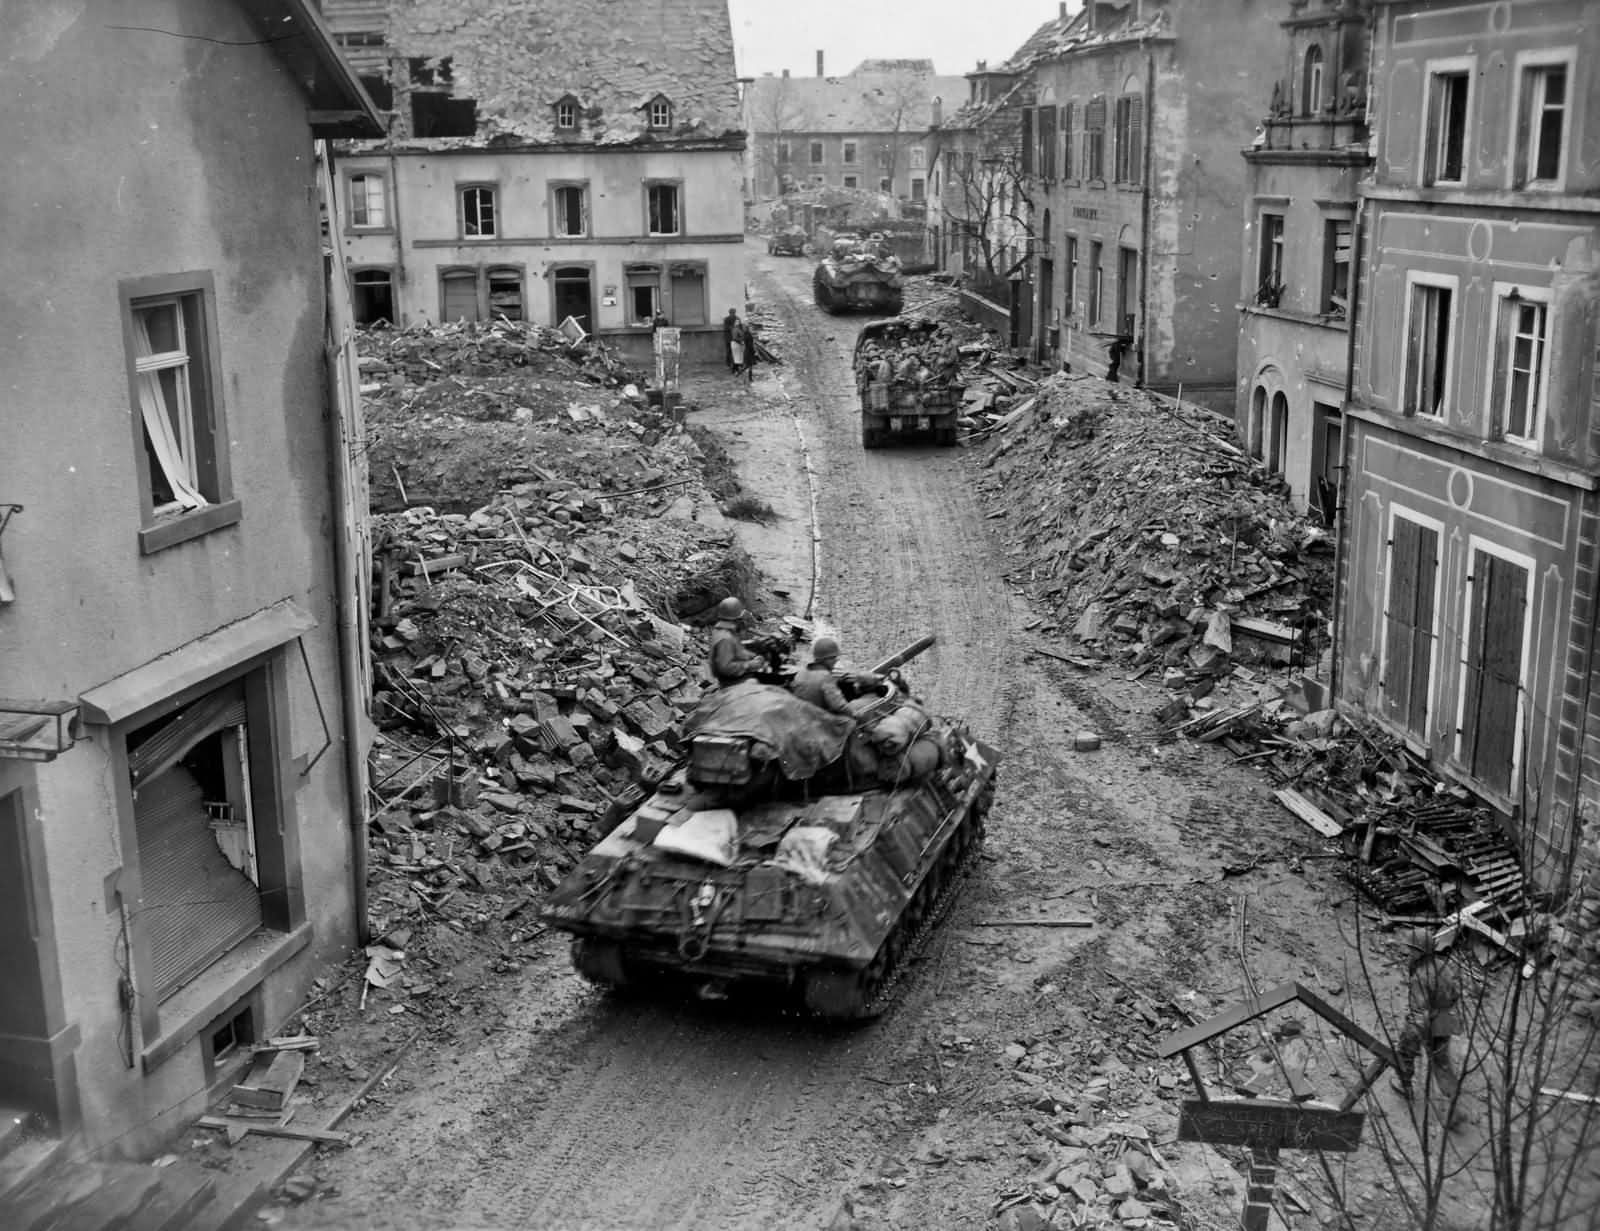 M10, M4, Jeep And 2 1/2 Ton Truck 76th Infantry Division Speicher 1945